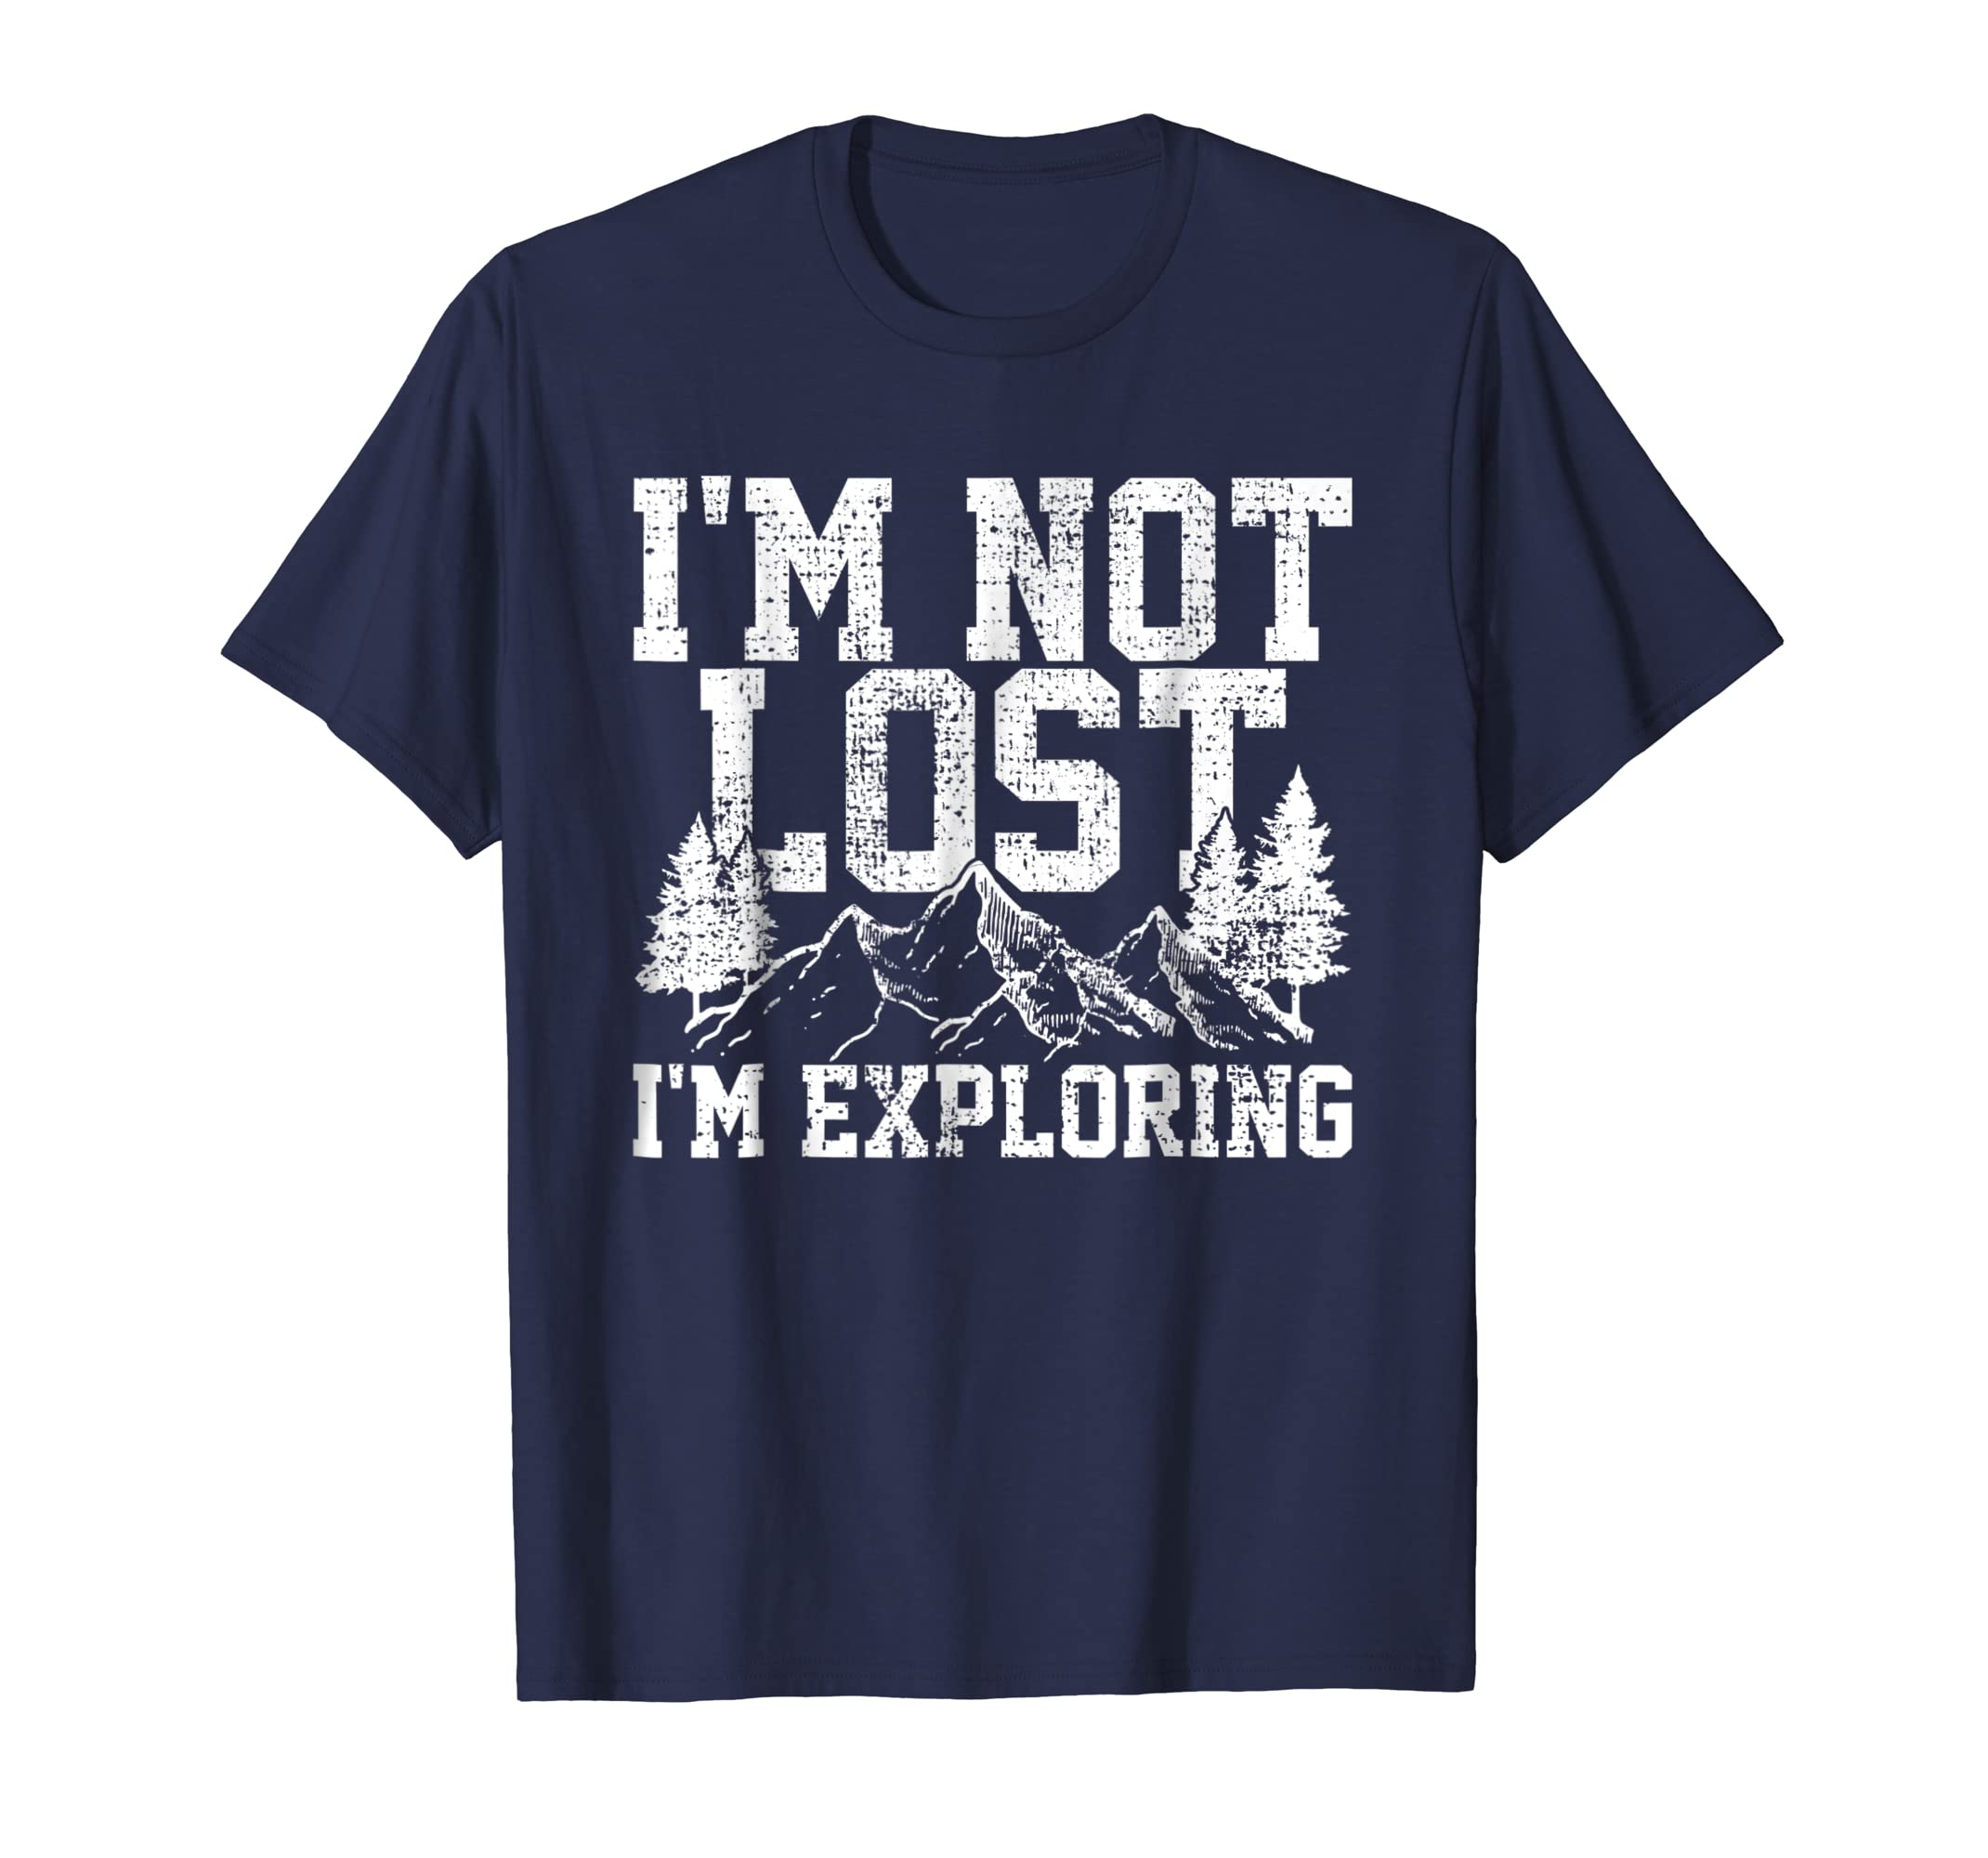 Hike T Shirt Hiking Tshirt Nature Tee Lost Explorer Gift-azvn